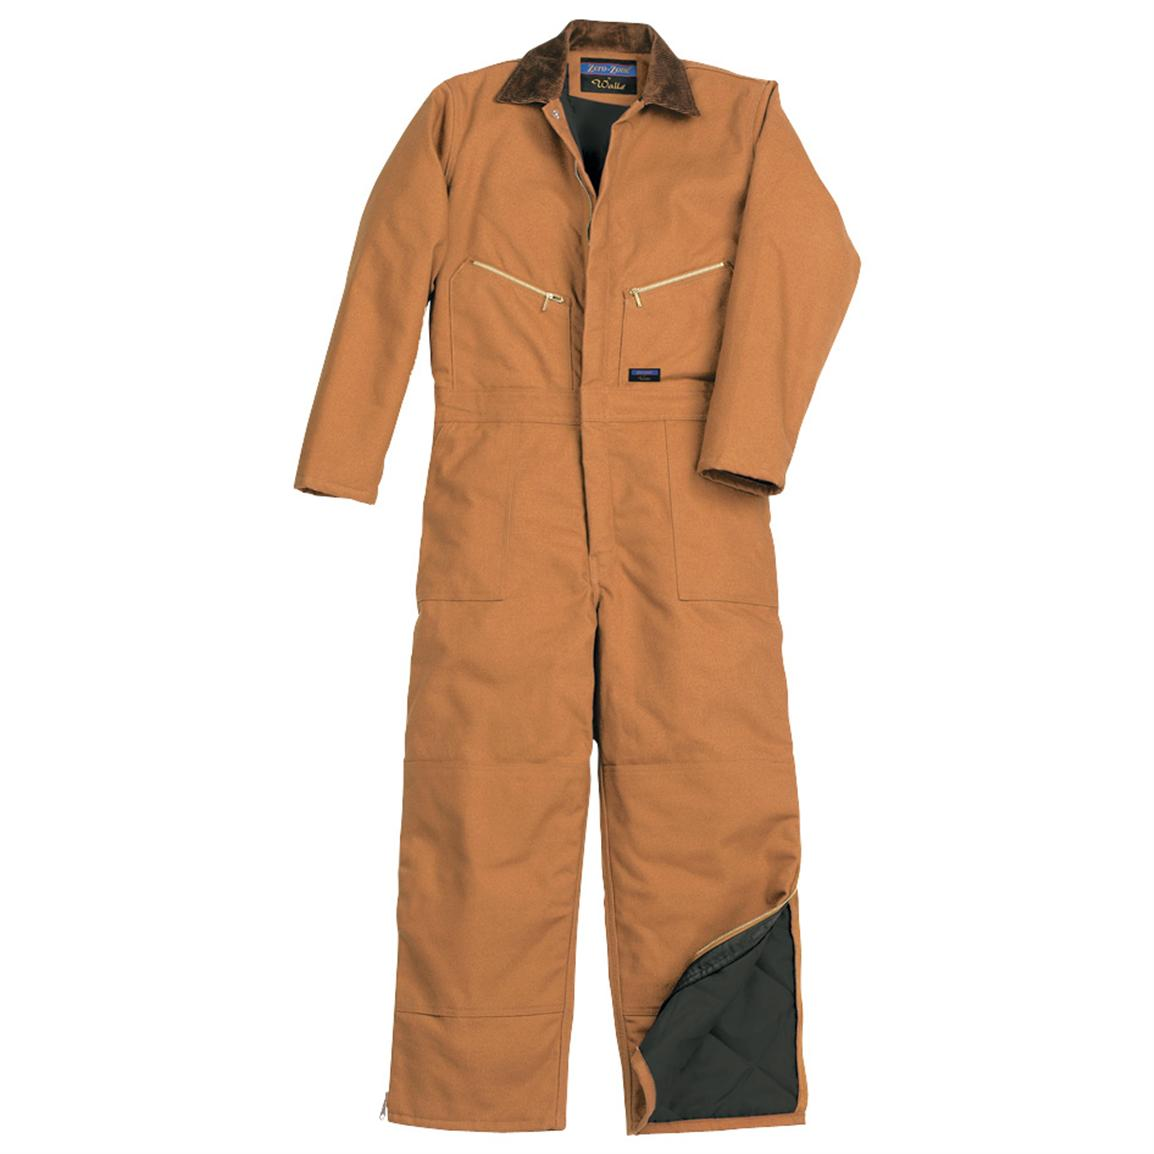 Youth Walls 174 Insulated Coveralls 161065 Overalls